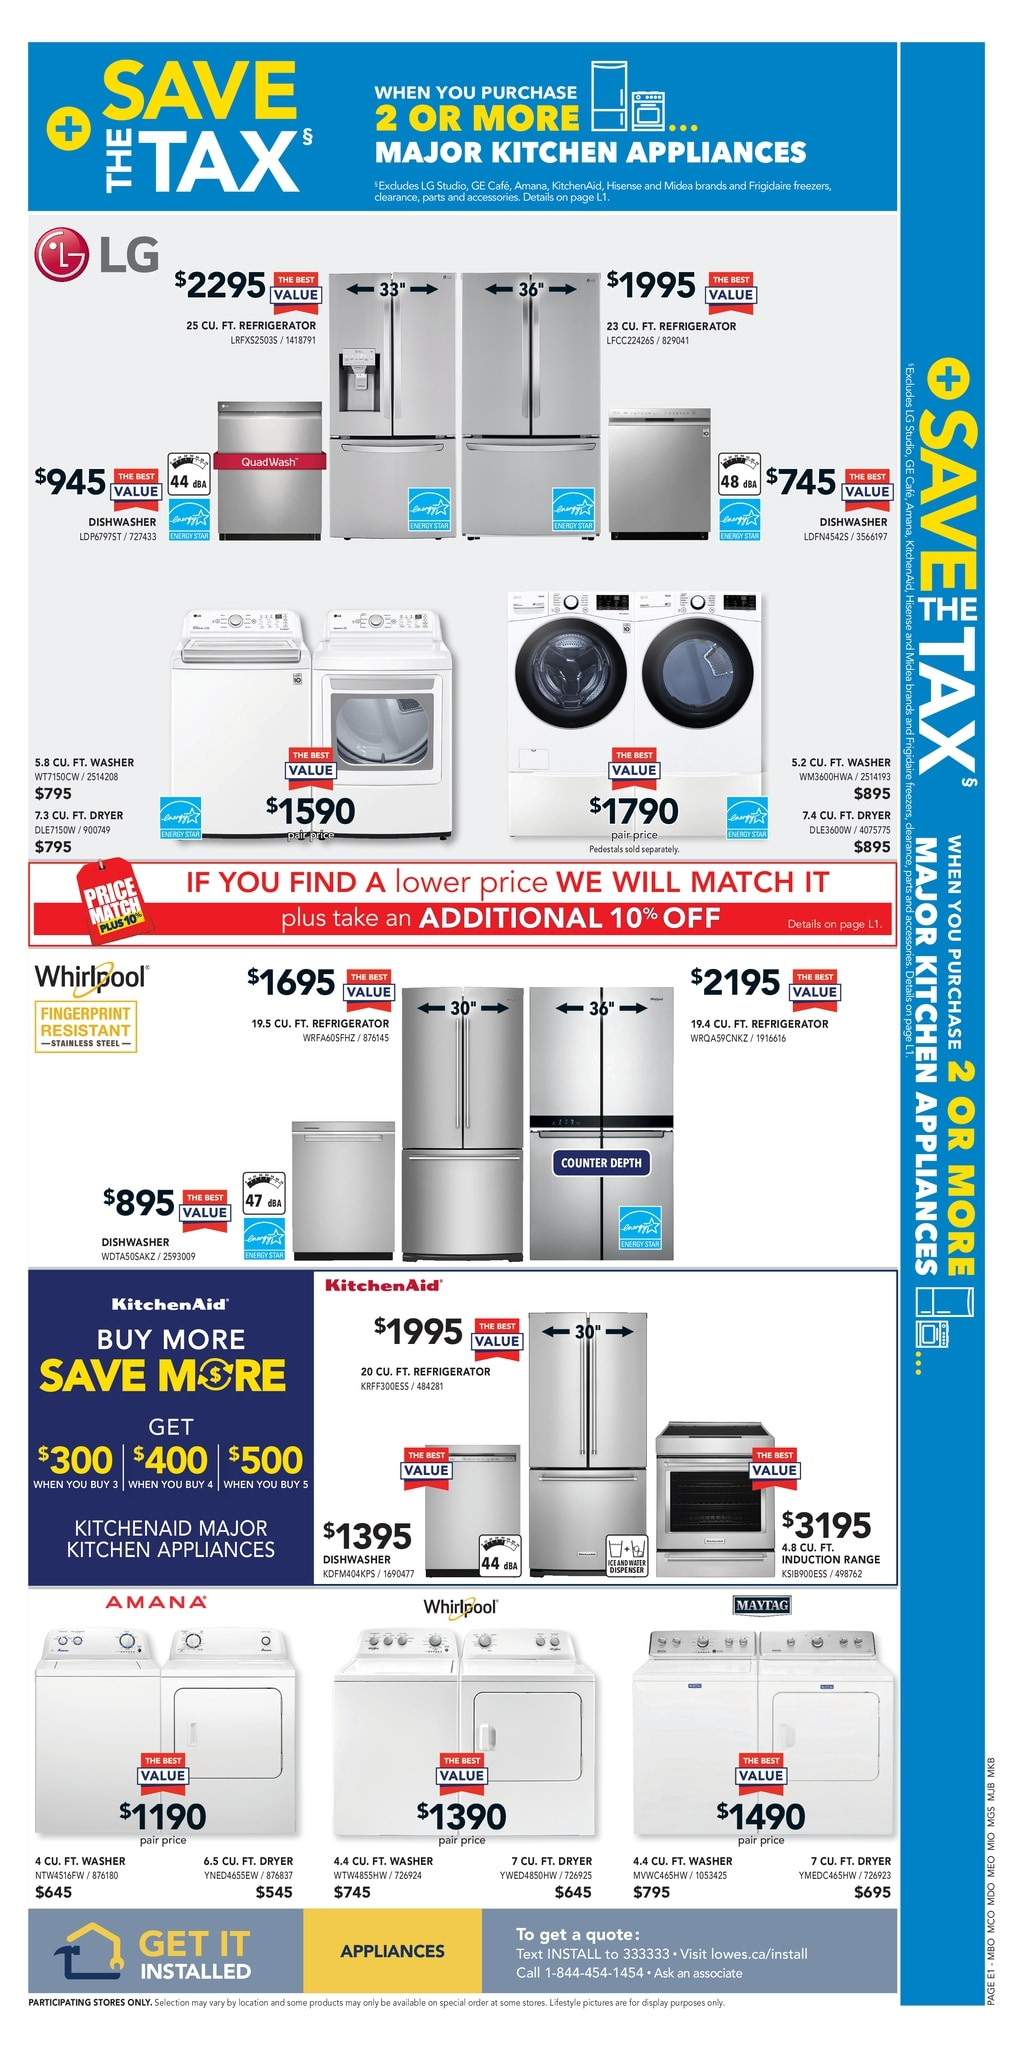 Lowe's - Weekly Flyer Specials - Page 7